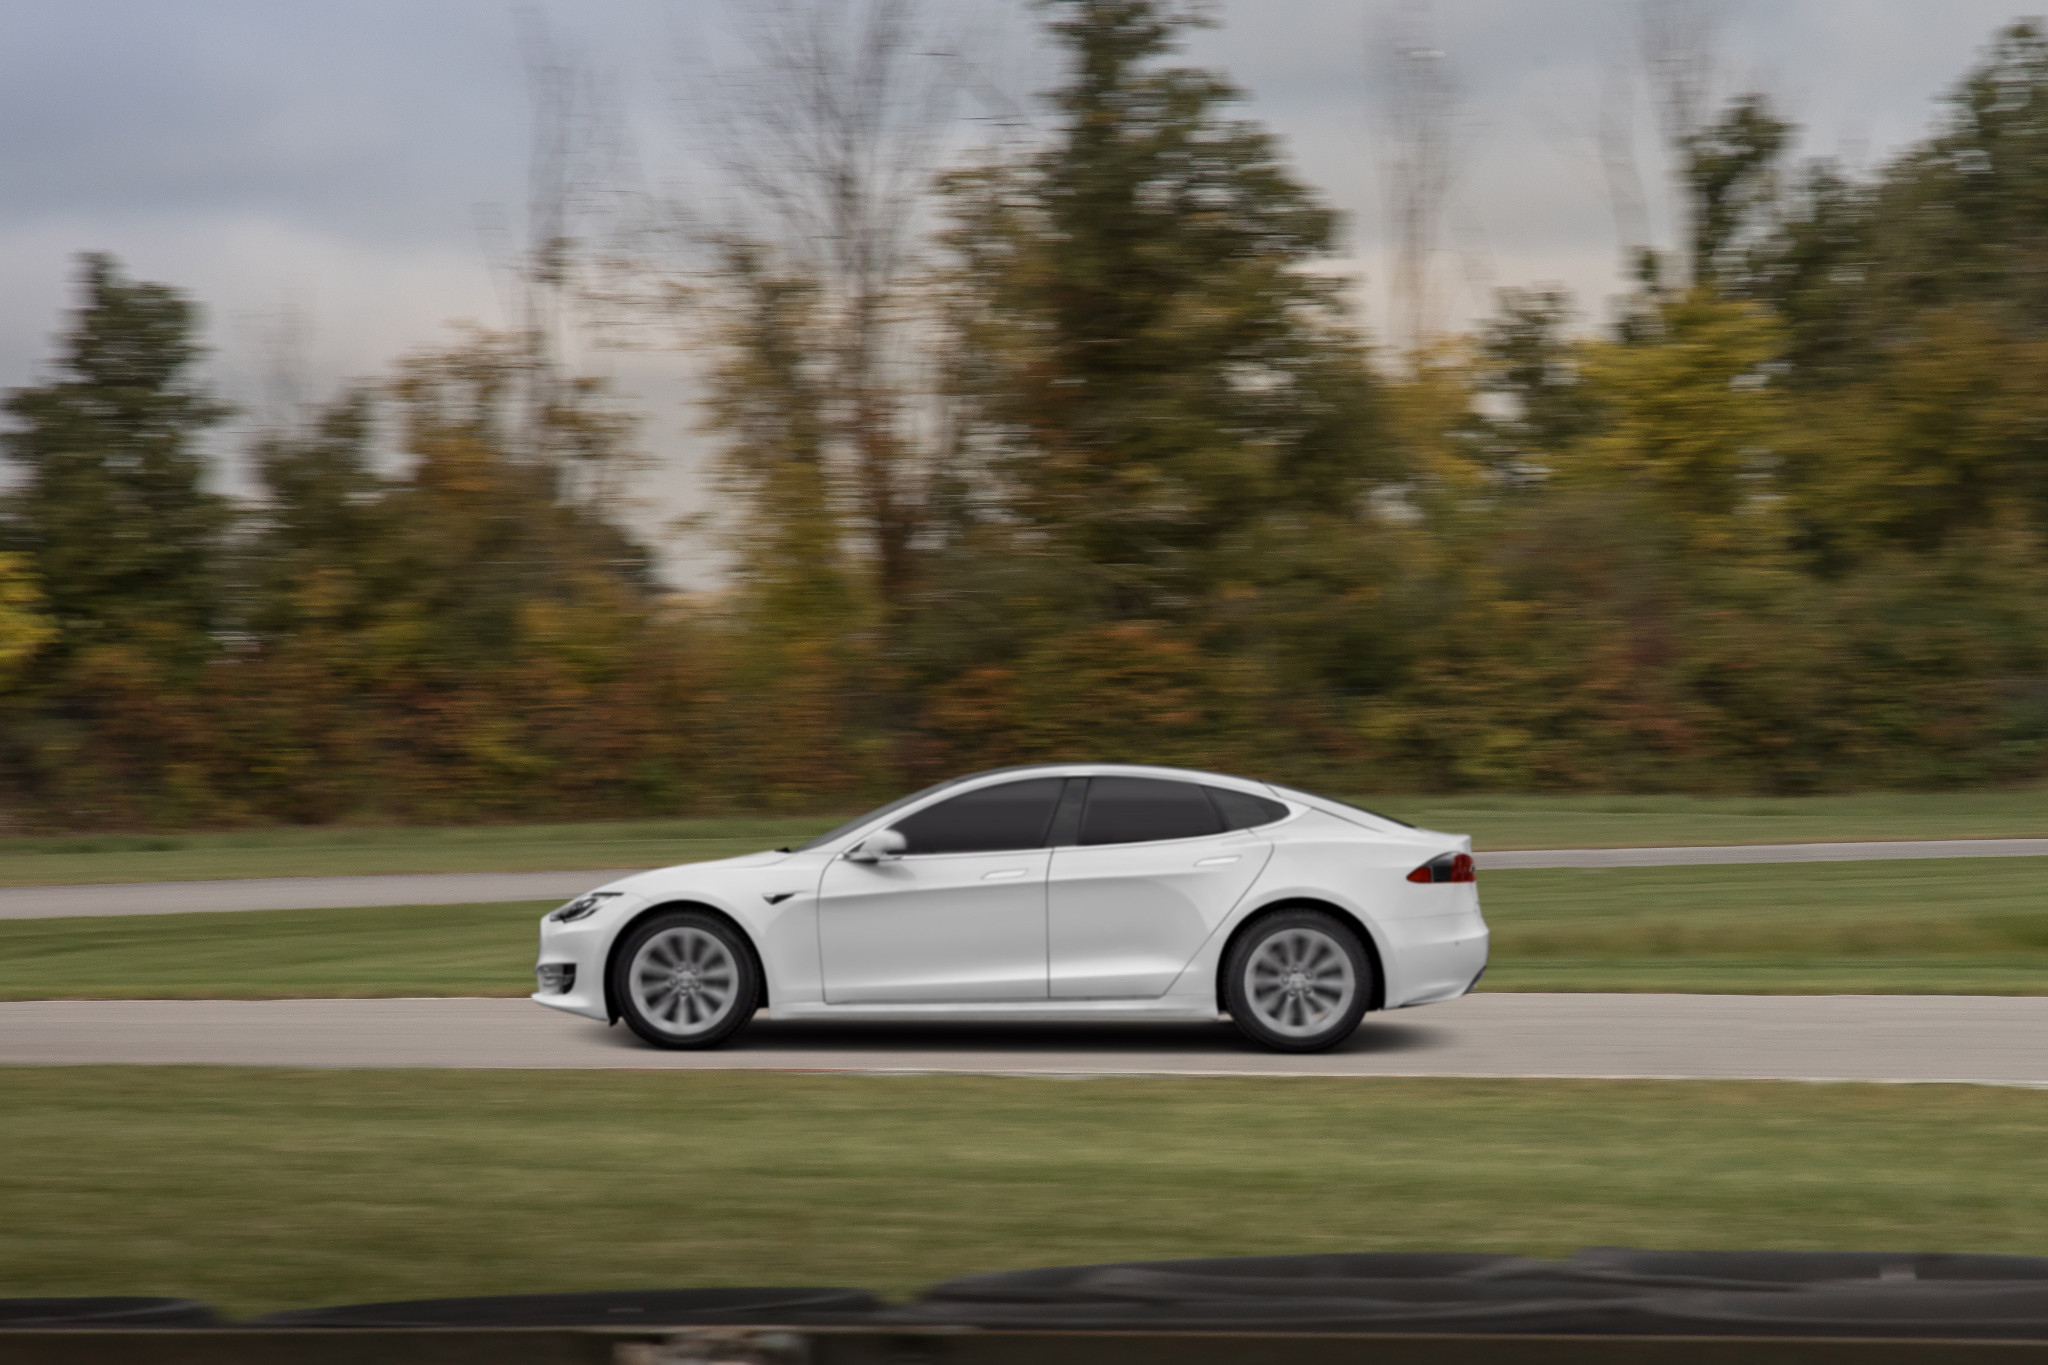 The Week in Tesla News: Model S Rocks the 'Ring, Model 3 Aces Crash Tests, Dog Mode Defended